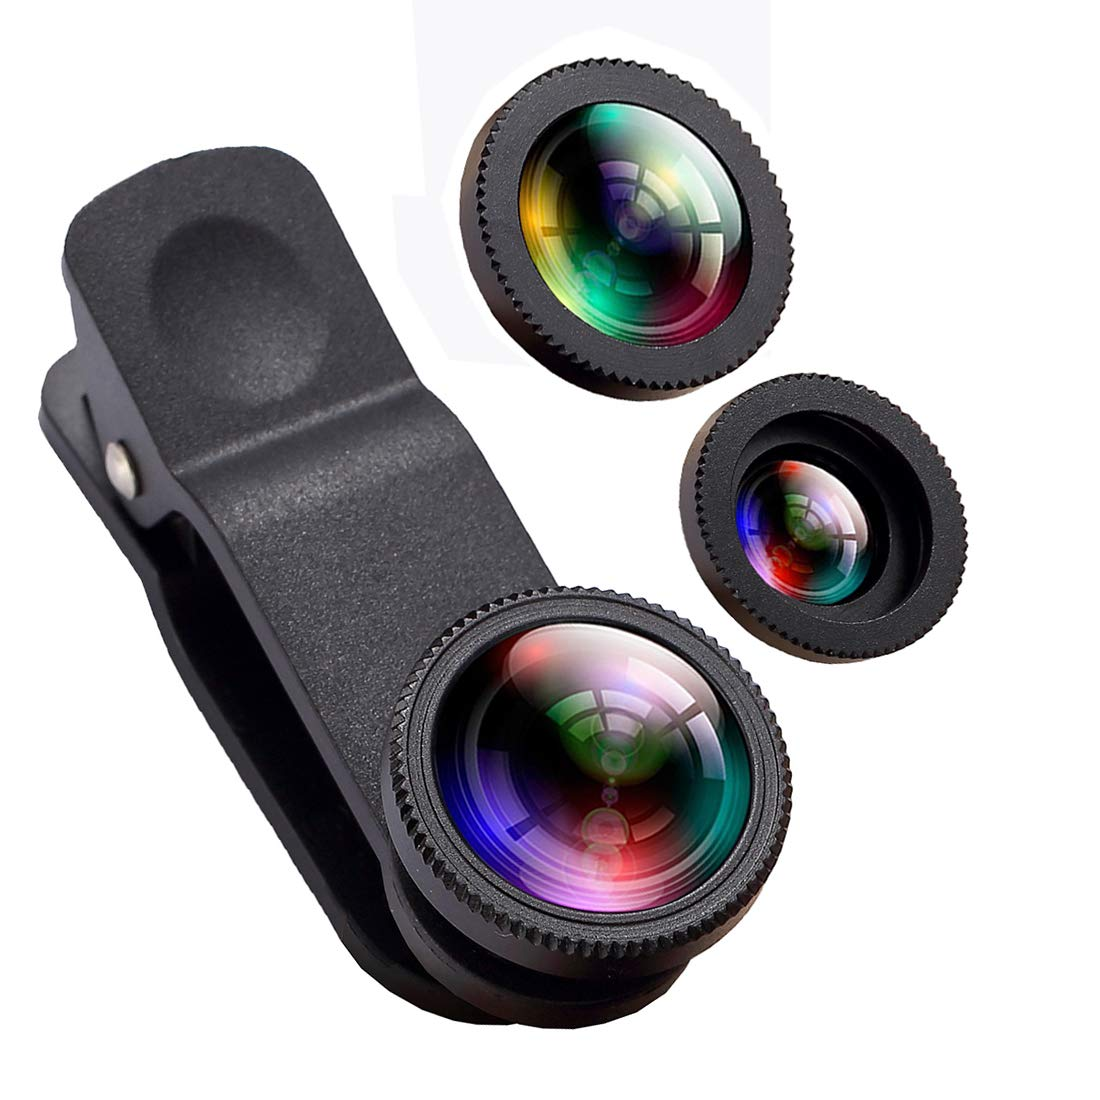 Phone Camera Lens, Oande 3 in 1 Fisheye Lens & 10X Macro Lens &0.65X Wide Angle Lens, Cell Phone Lens HD Camera Lens Kits Compatible iPhone 8/7/6s Plus/6s/5s Other Devices O&E-01-0026